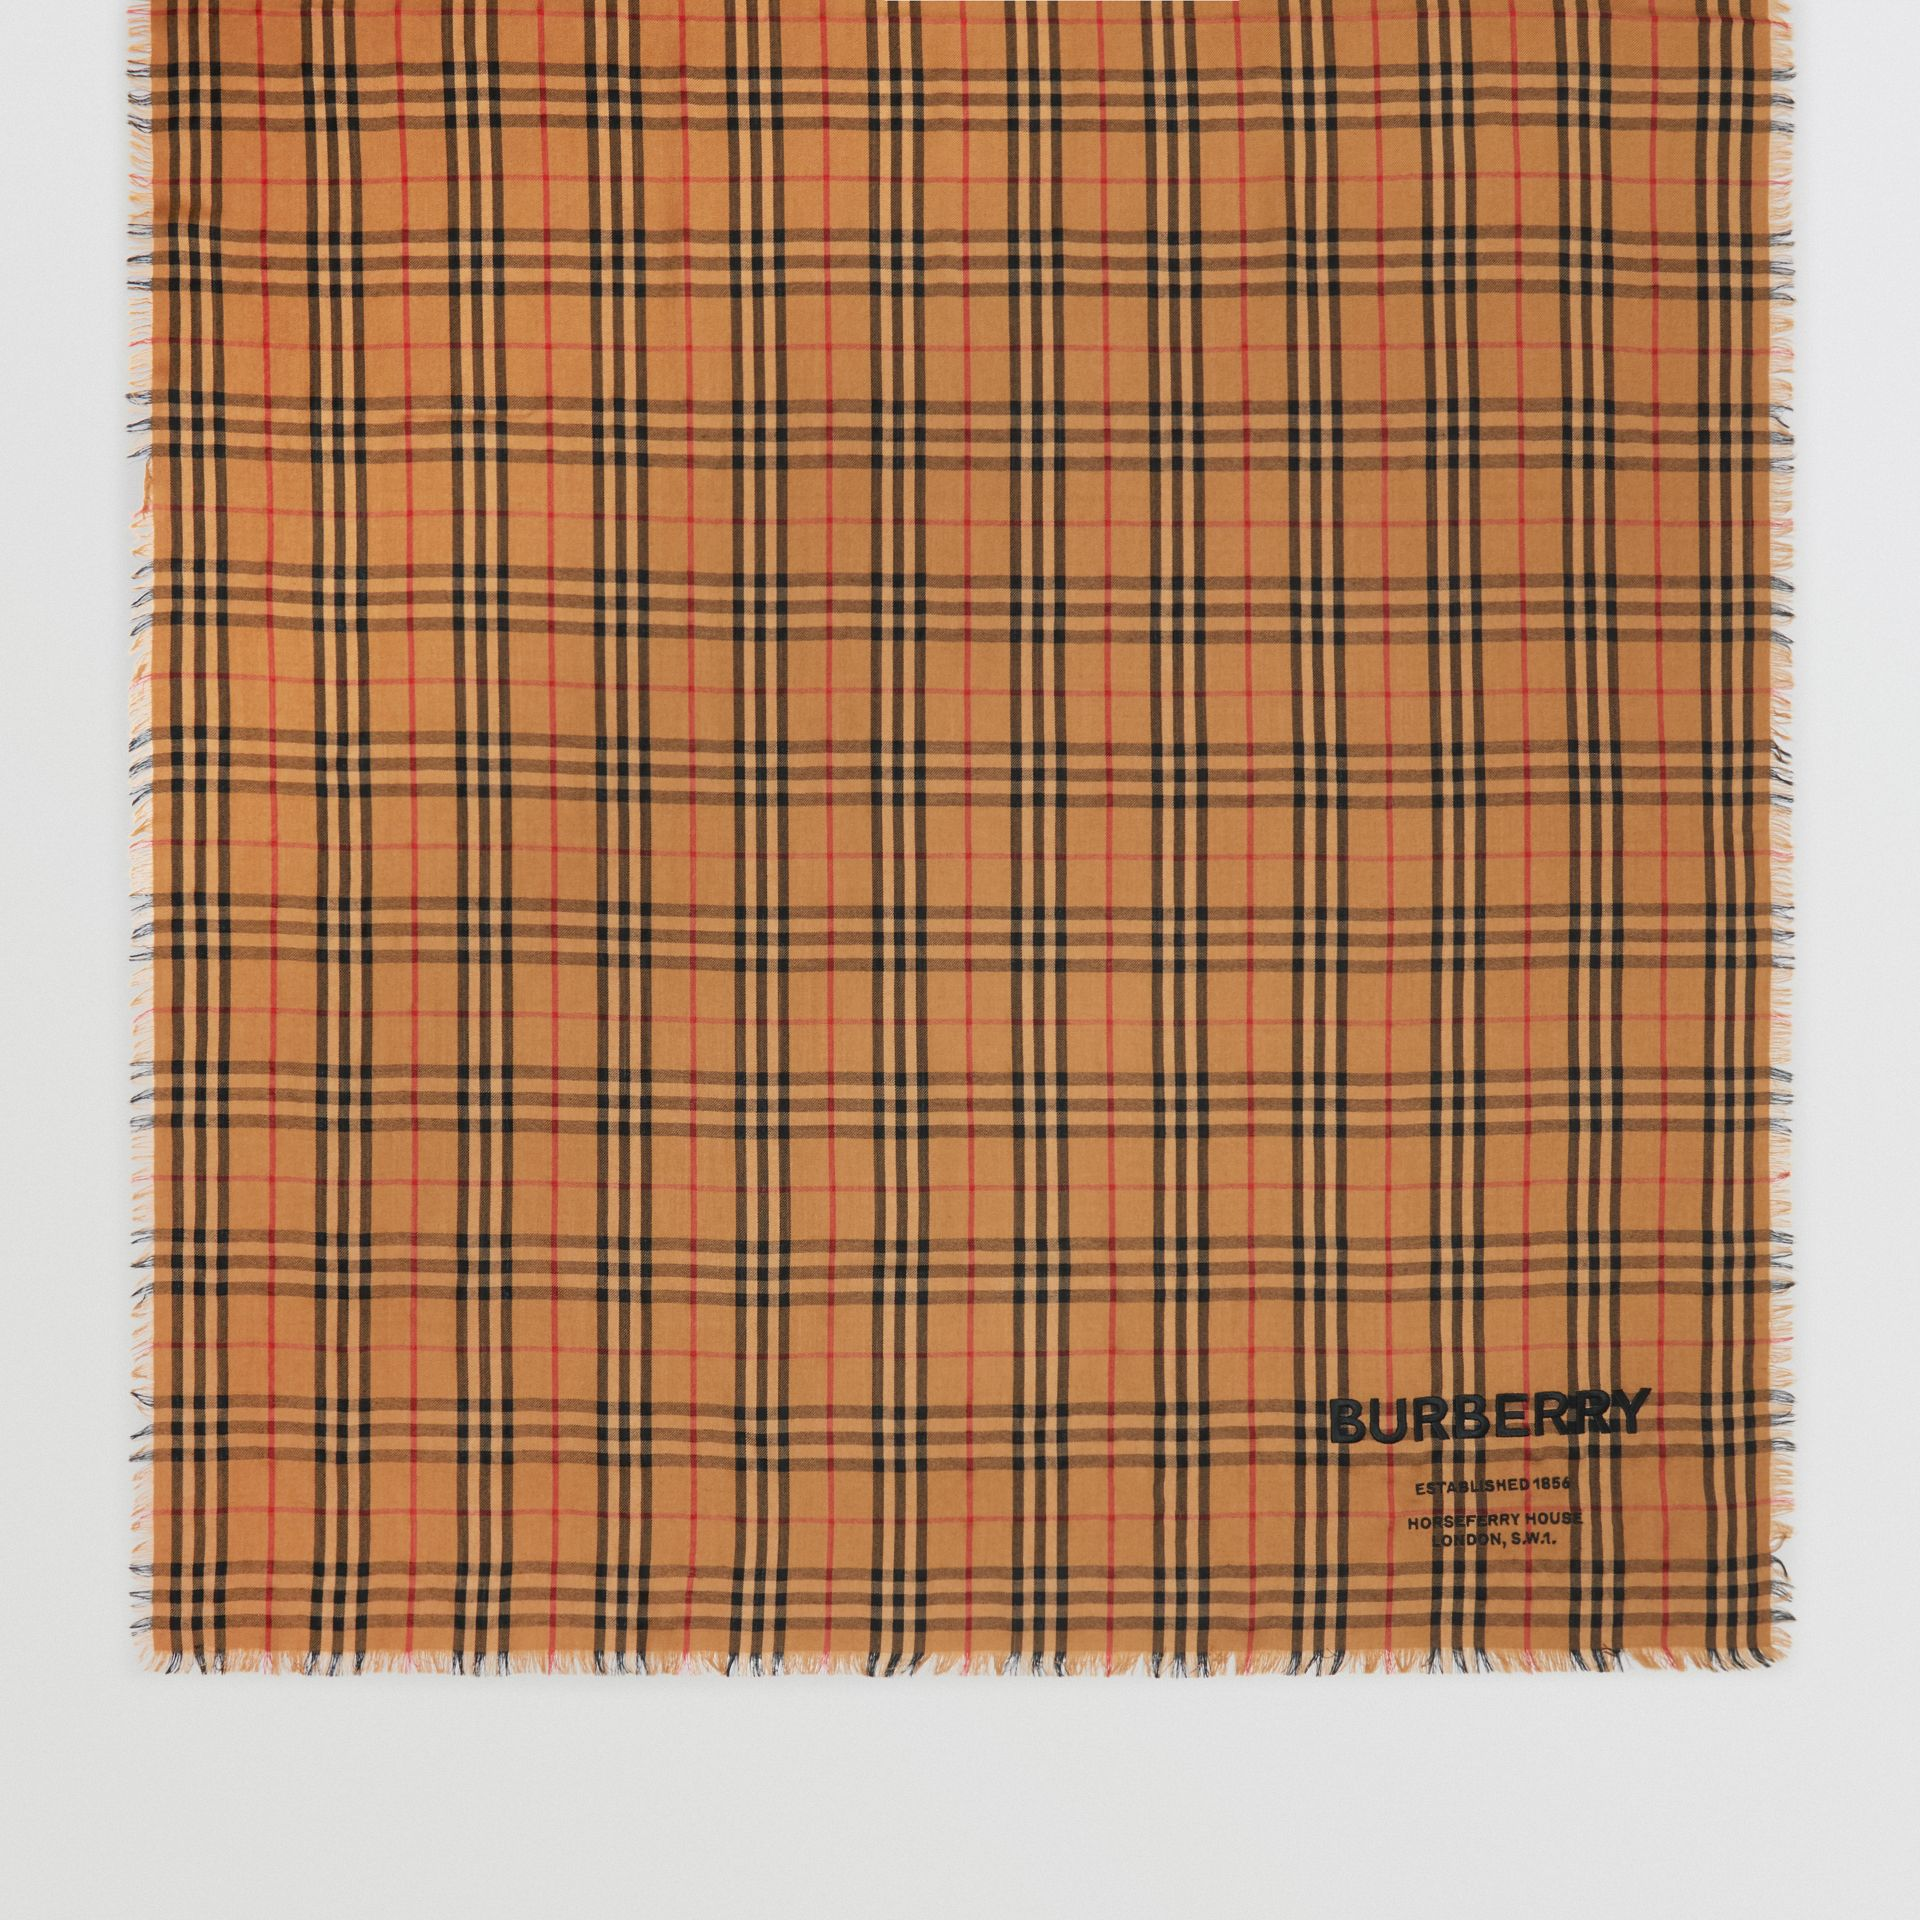 Embroidered Vintage Check Lightweight Cashmere Scarf in Camel | Burberry - gallery image 4